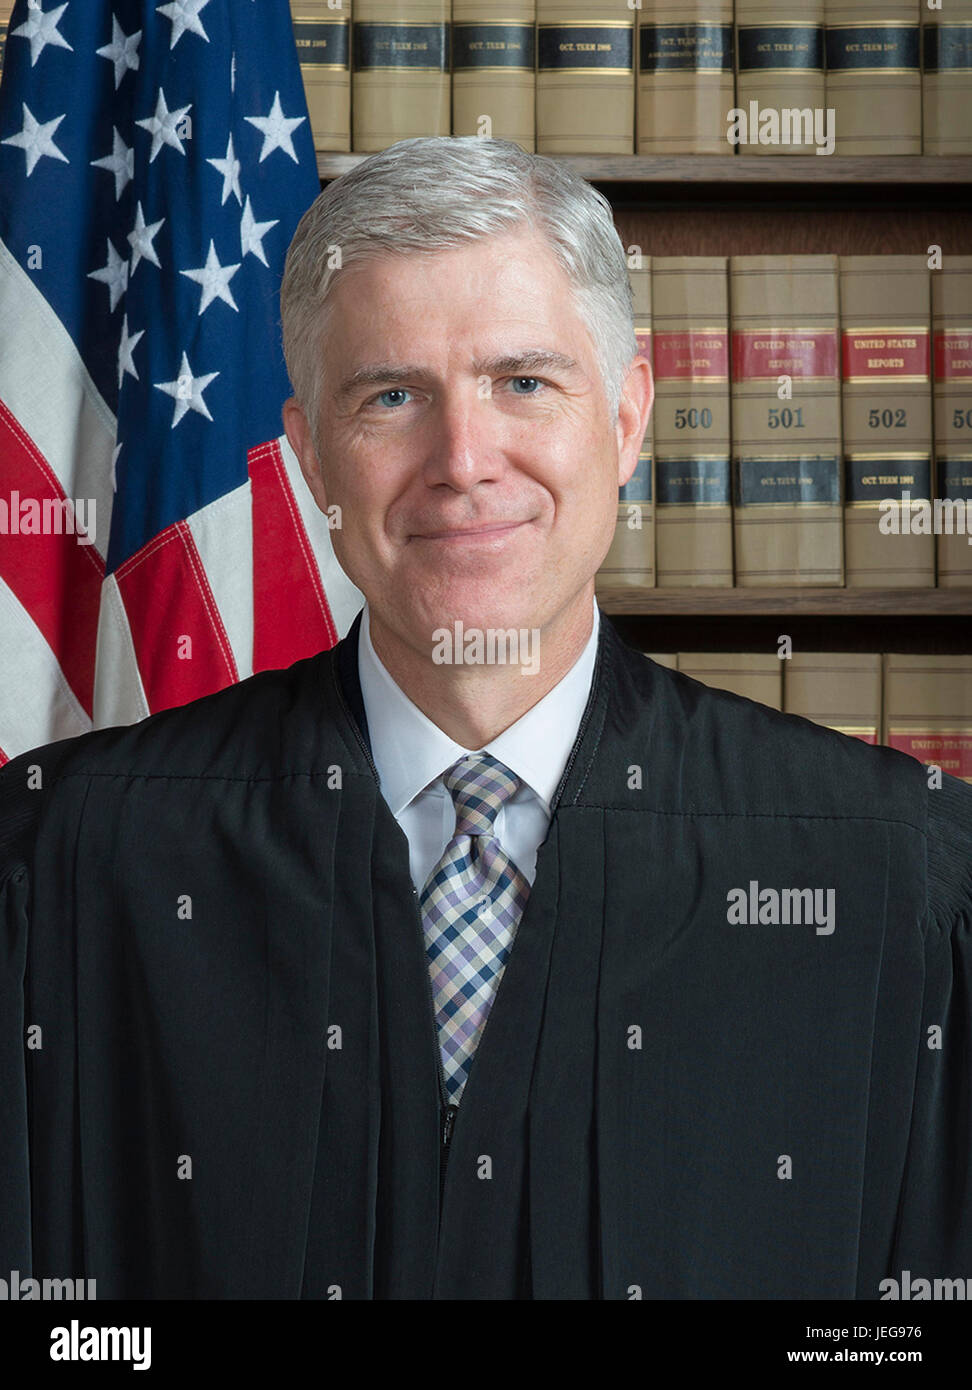 Associate Justice Neil M. Gorsuch is an Associate Justice of the Supreme Court of the United States.  Neil McGill - Stock Image